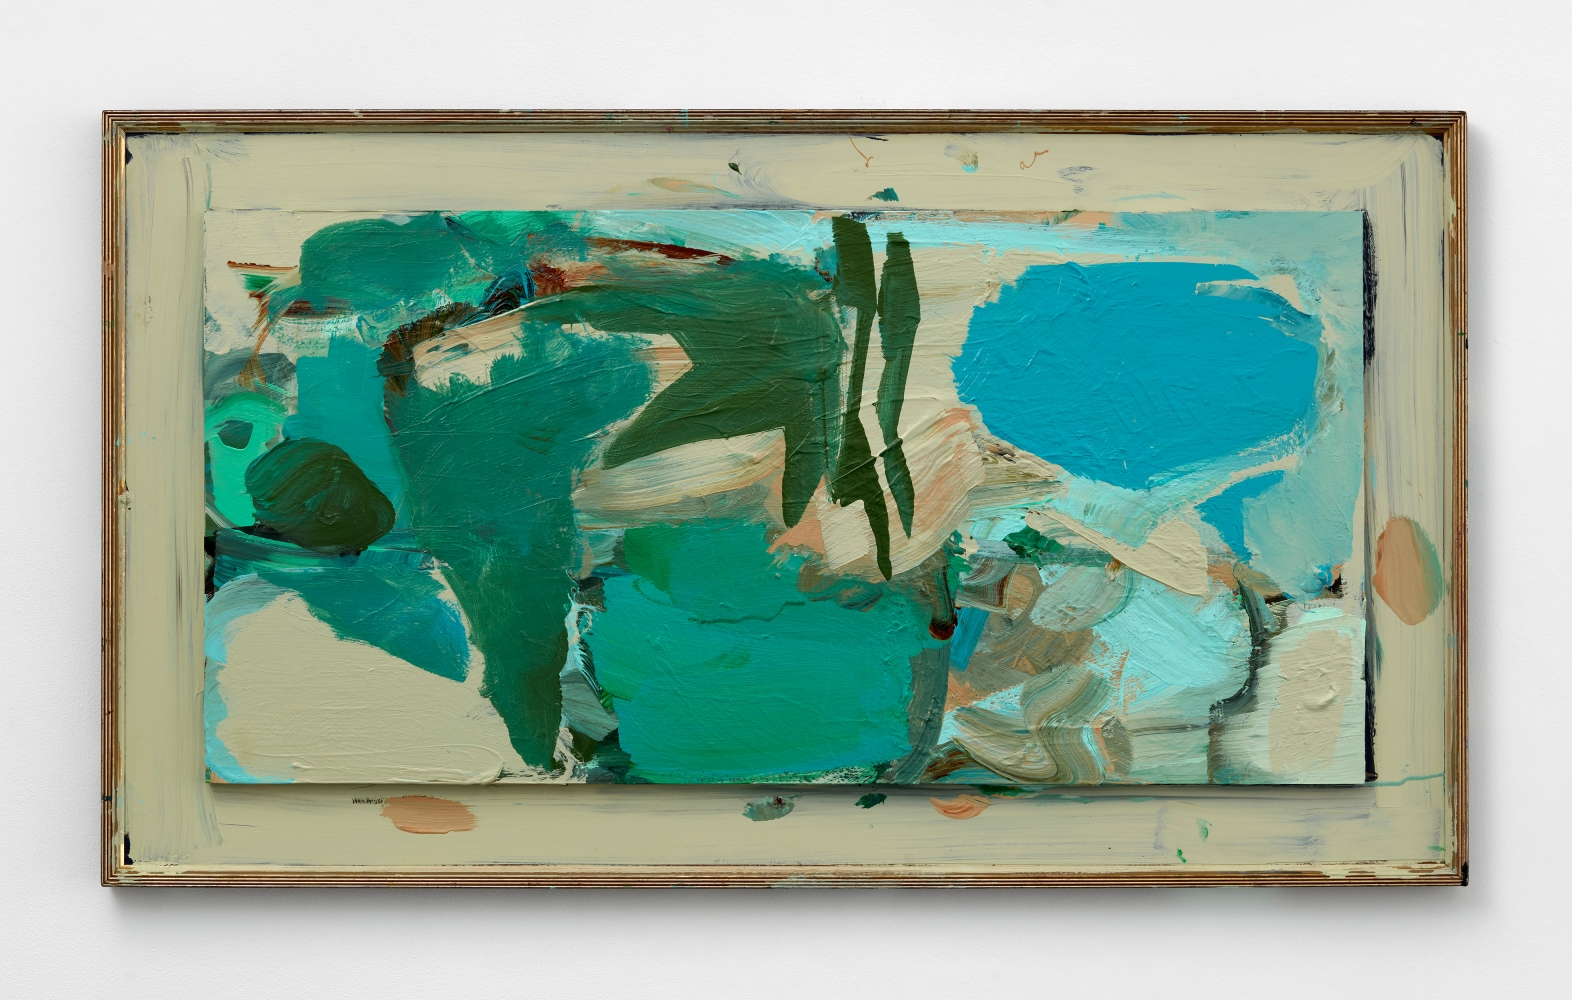 abstract painting in blues and greens